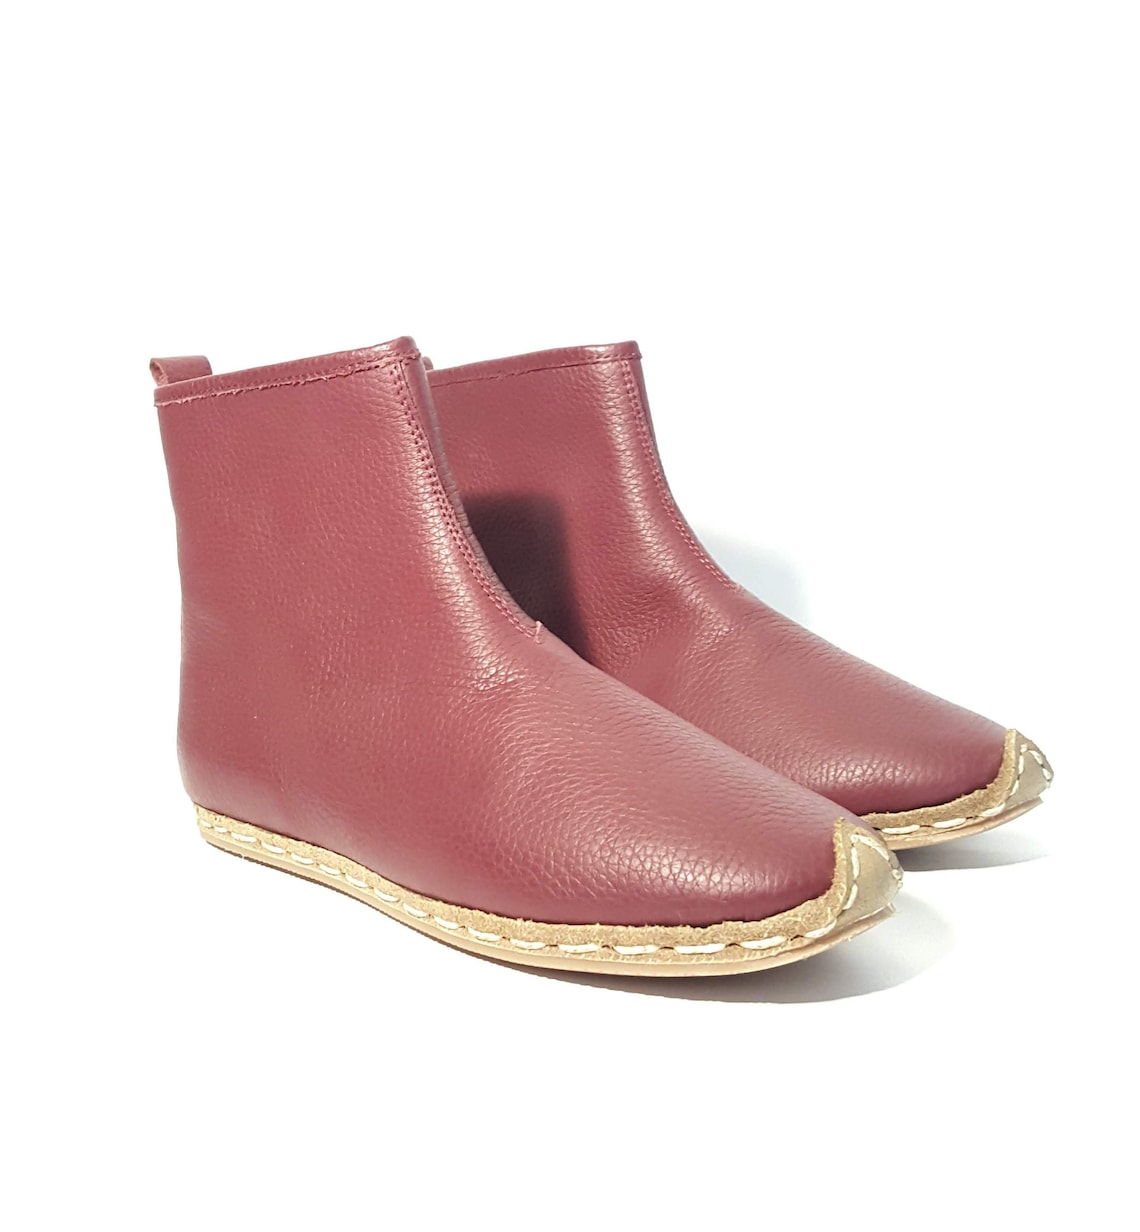 In Stock Handmade Burgundy Women's Boots Organic Dye 100% Leather Flat Slip Ons Women Ankle Boots Booties Earthing Grounding Shoes